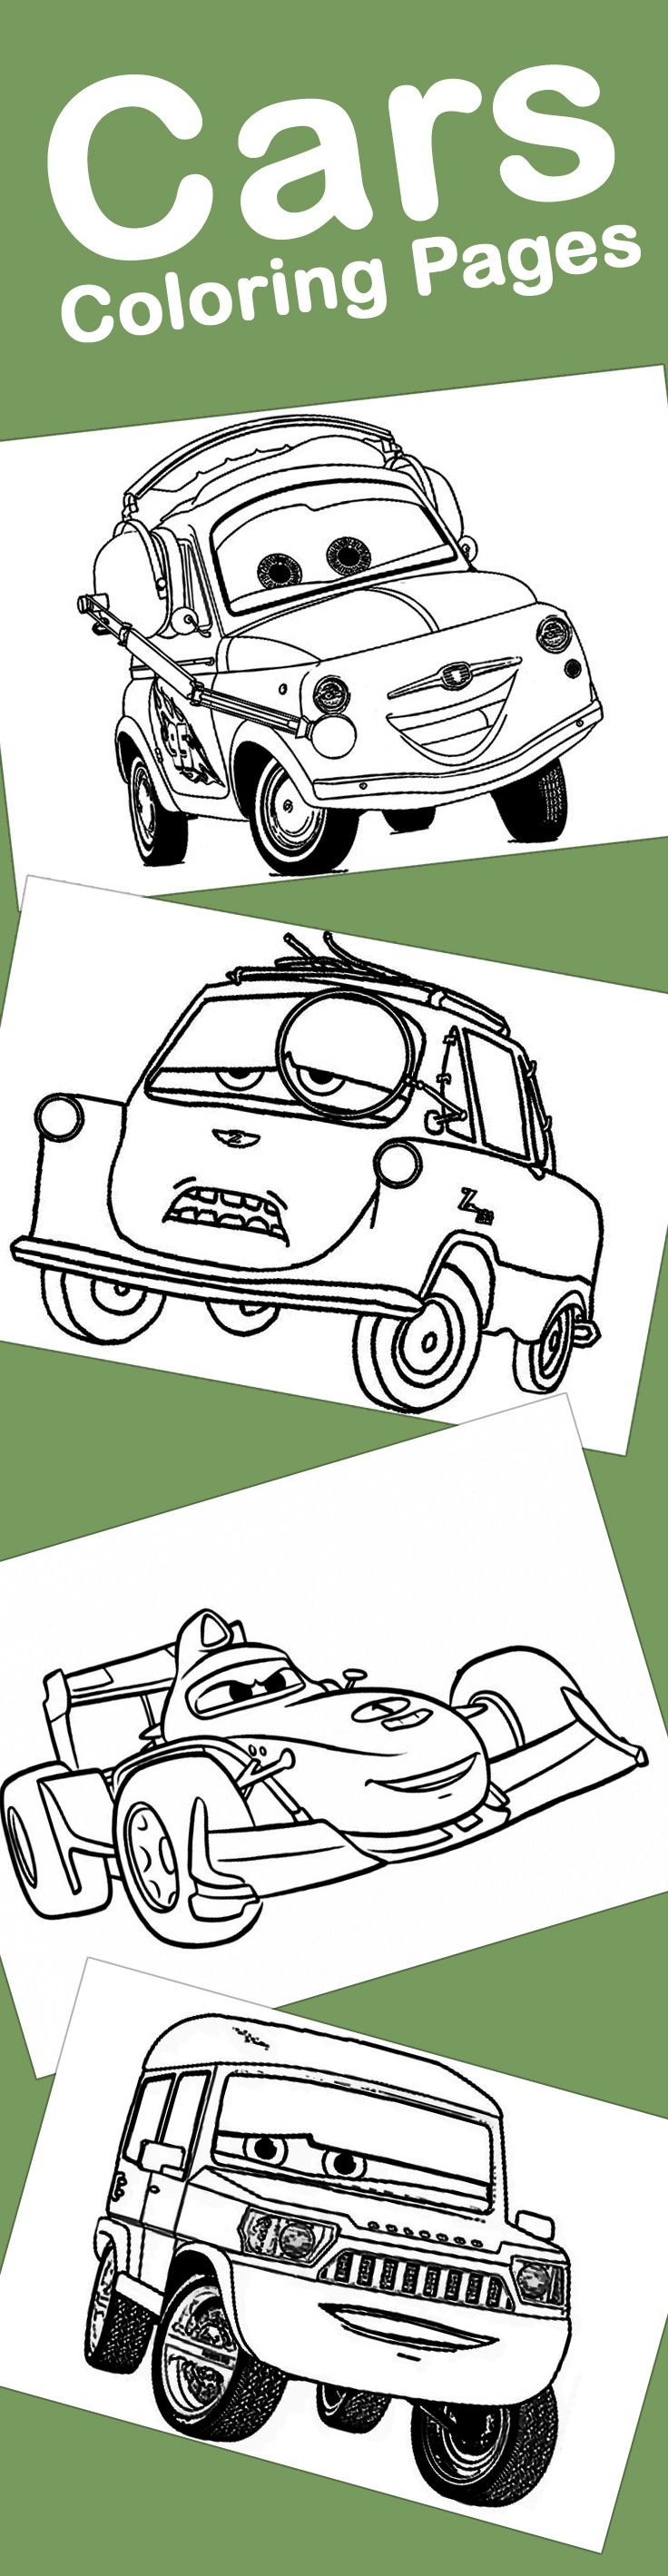 Top colorful cars coloring pages for your little one hereus